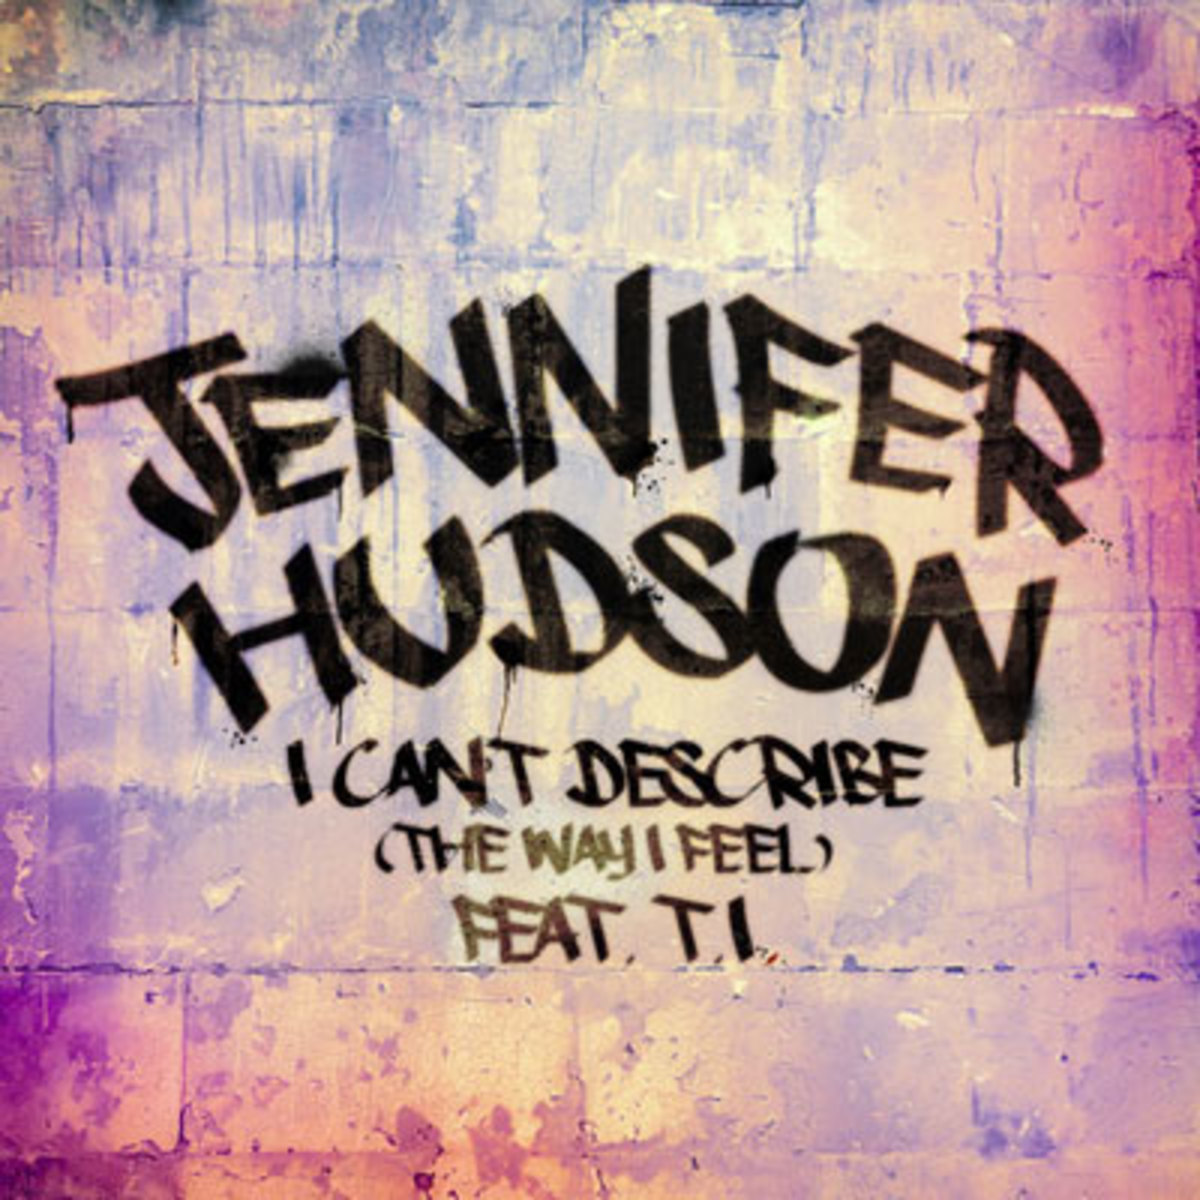 jhud-cantdescribe.jpg